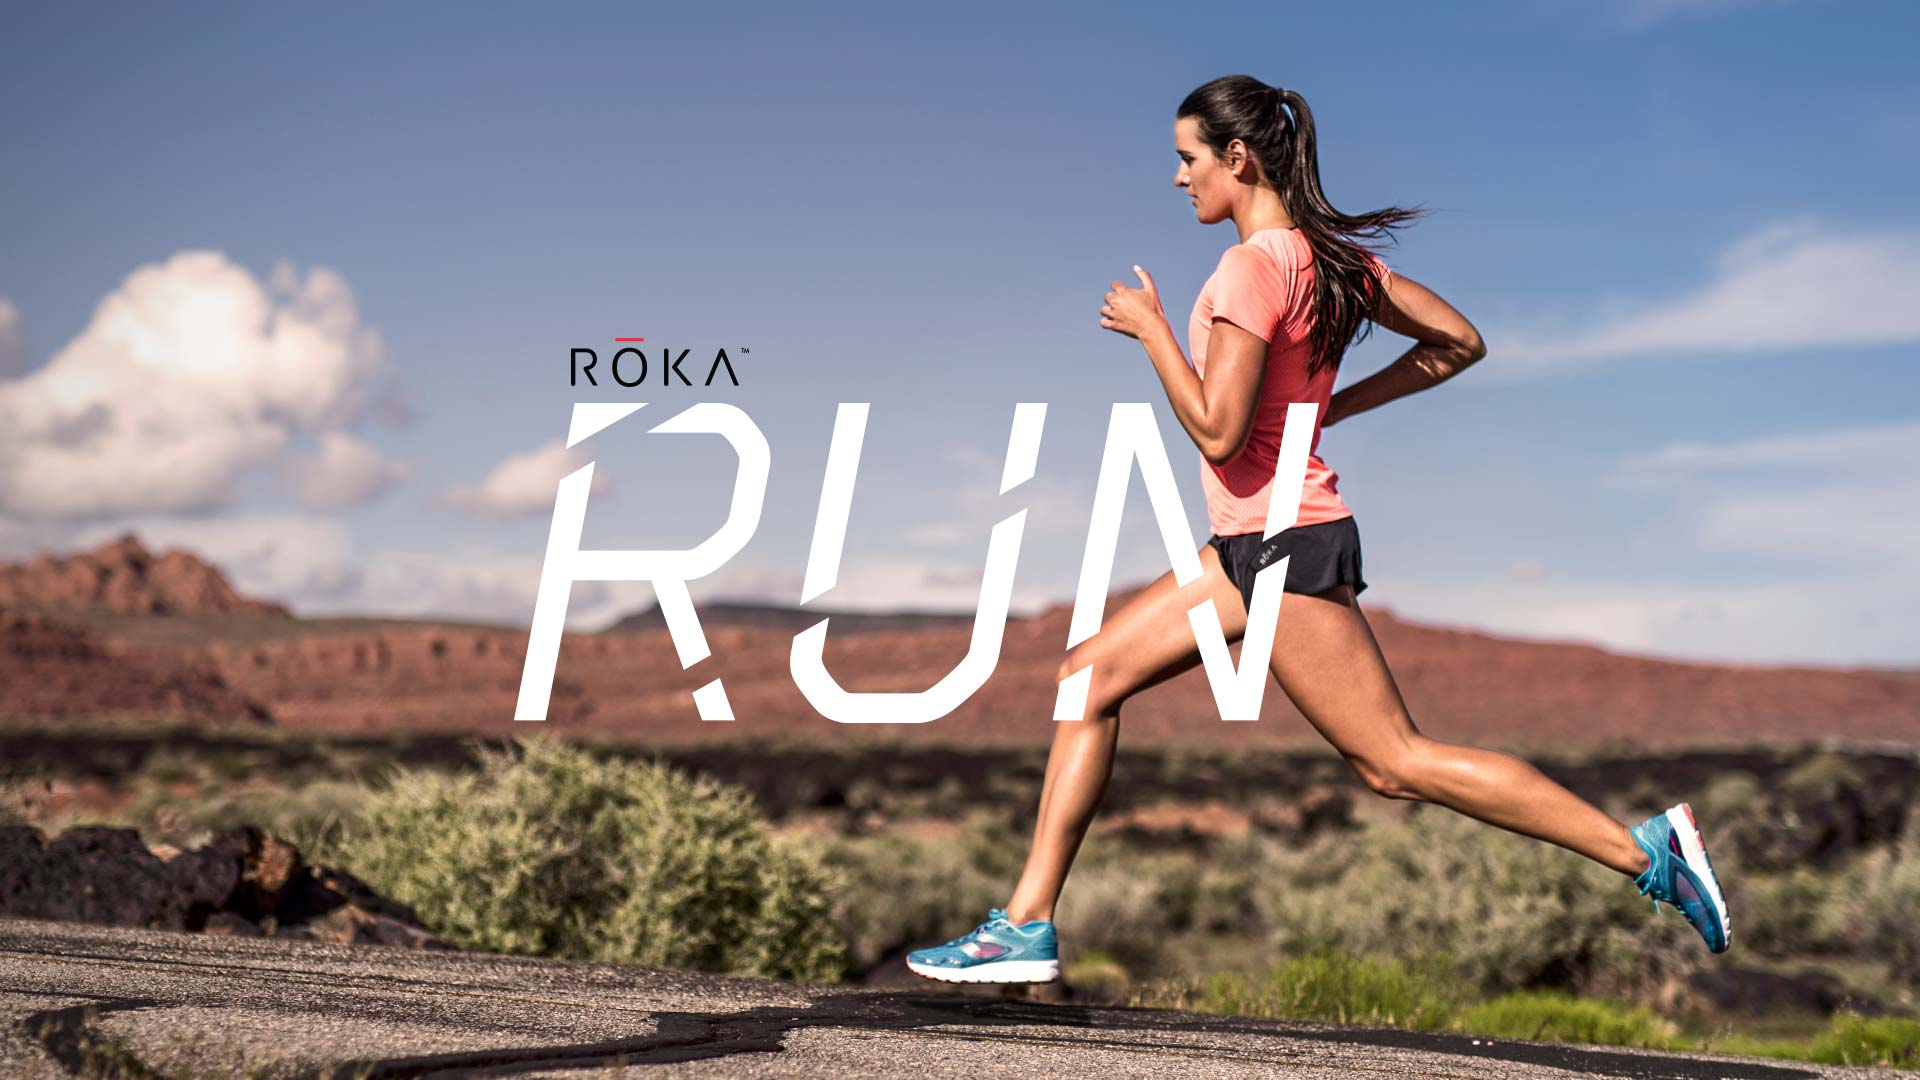 ROKA Run for Women